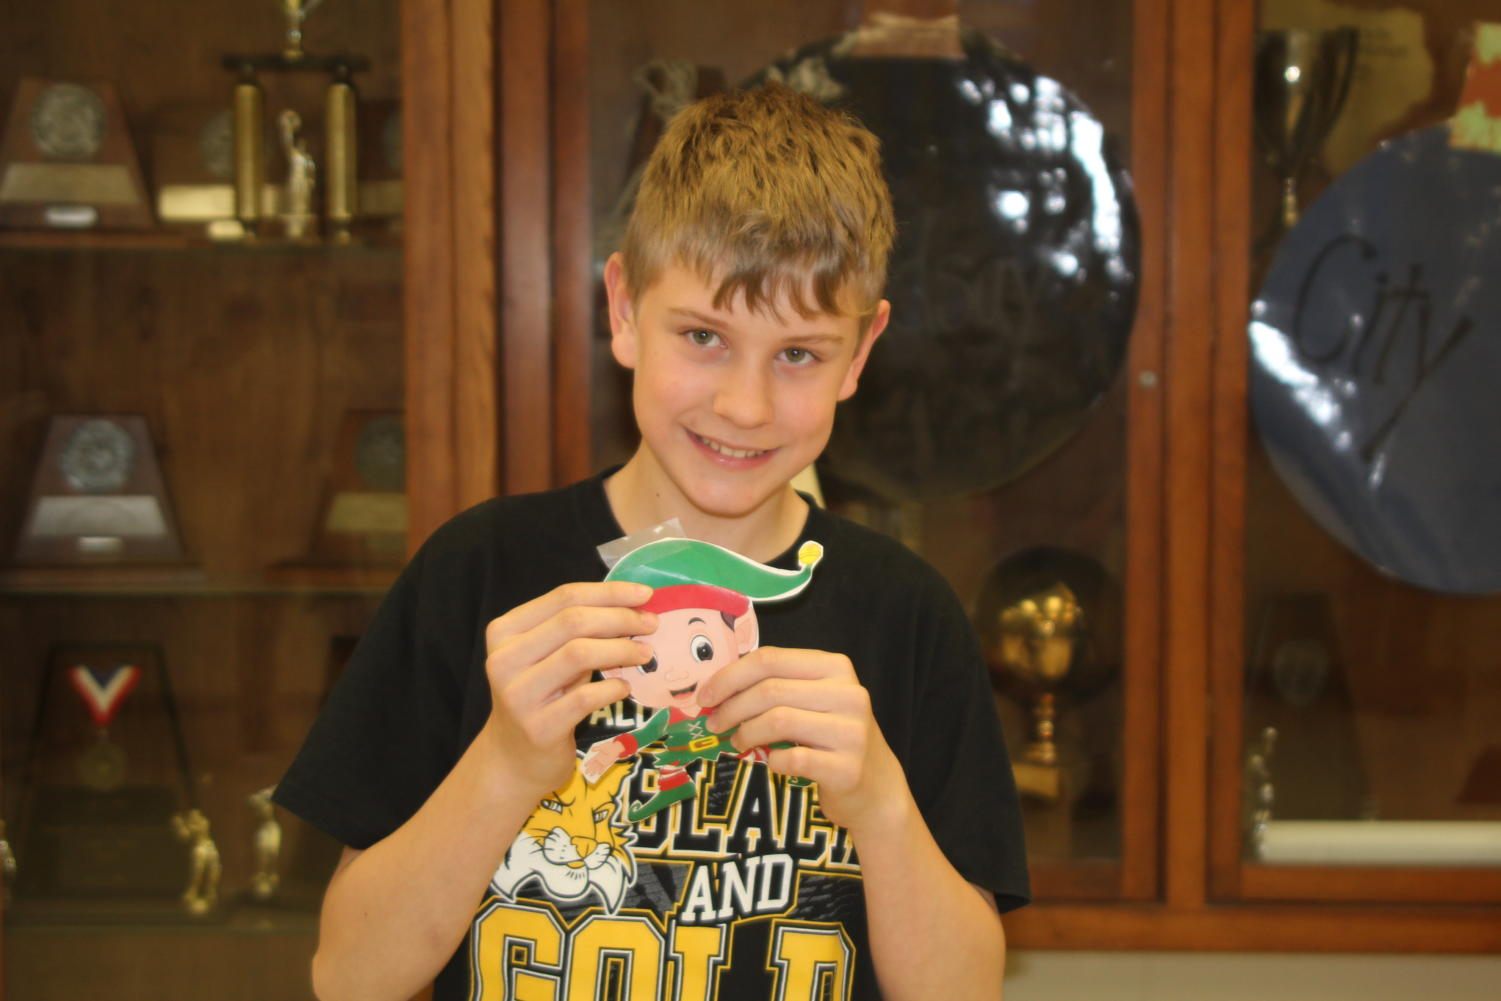 Seventh grader Jesse Pulley shows off Buddy the Elf that he found the first week of the Student Council game.